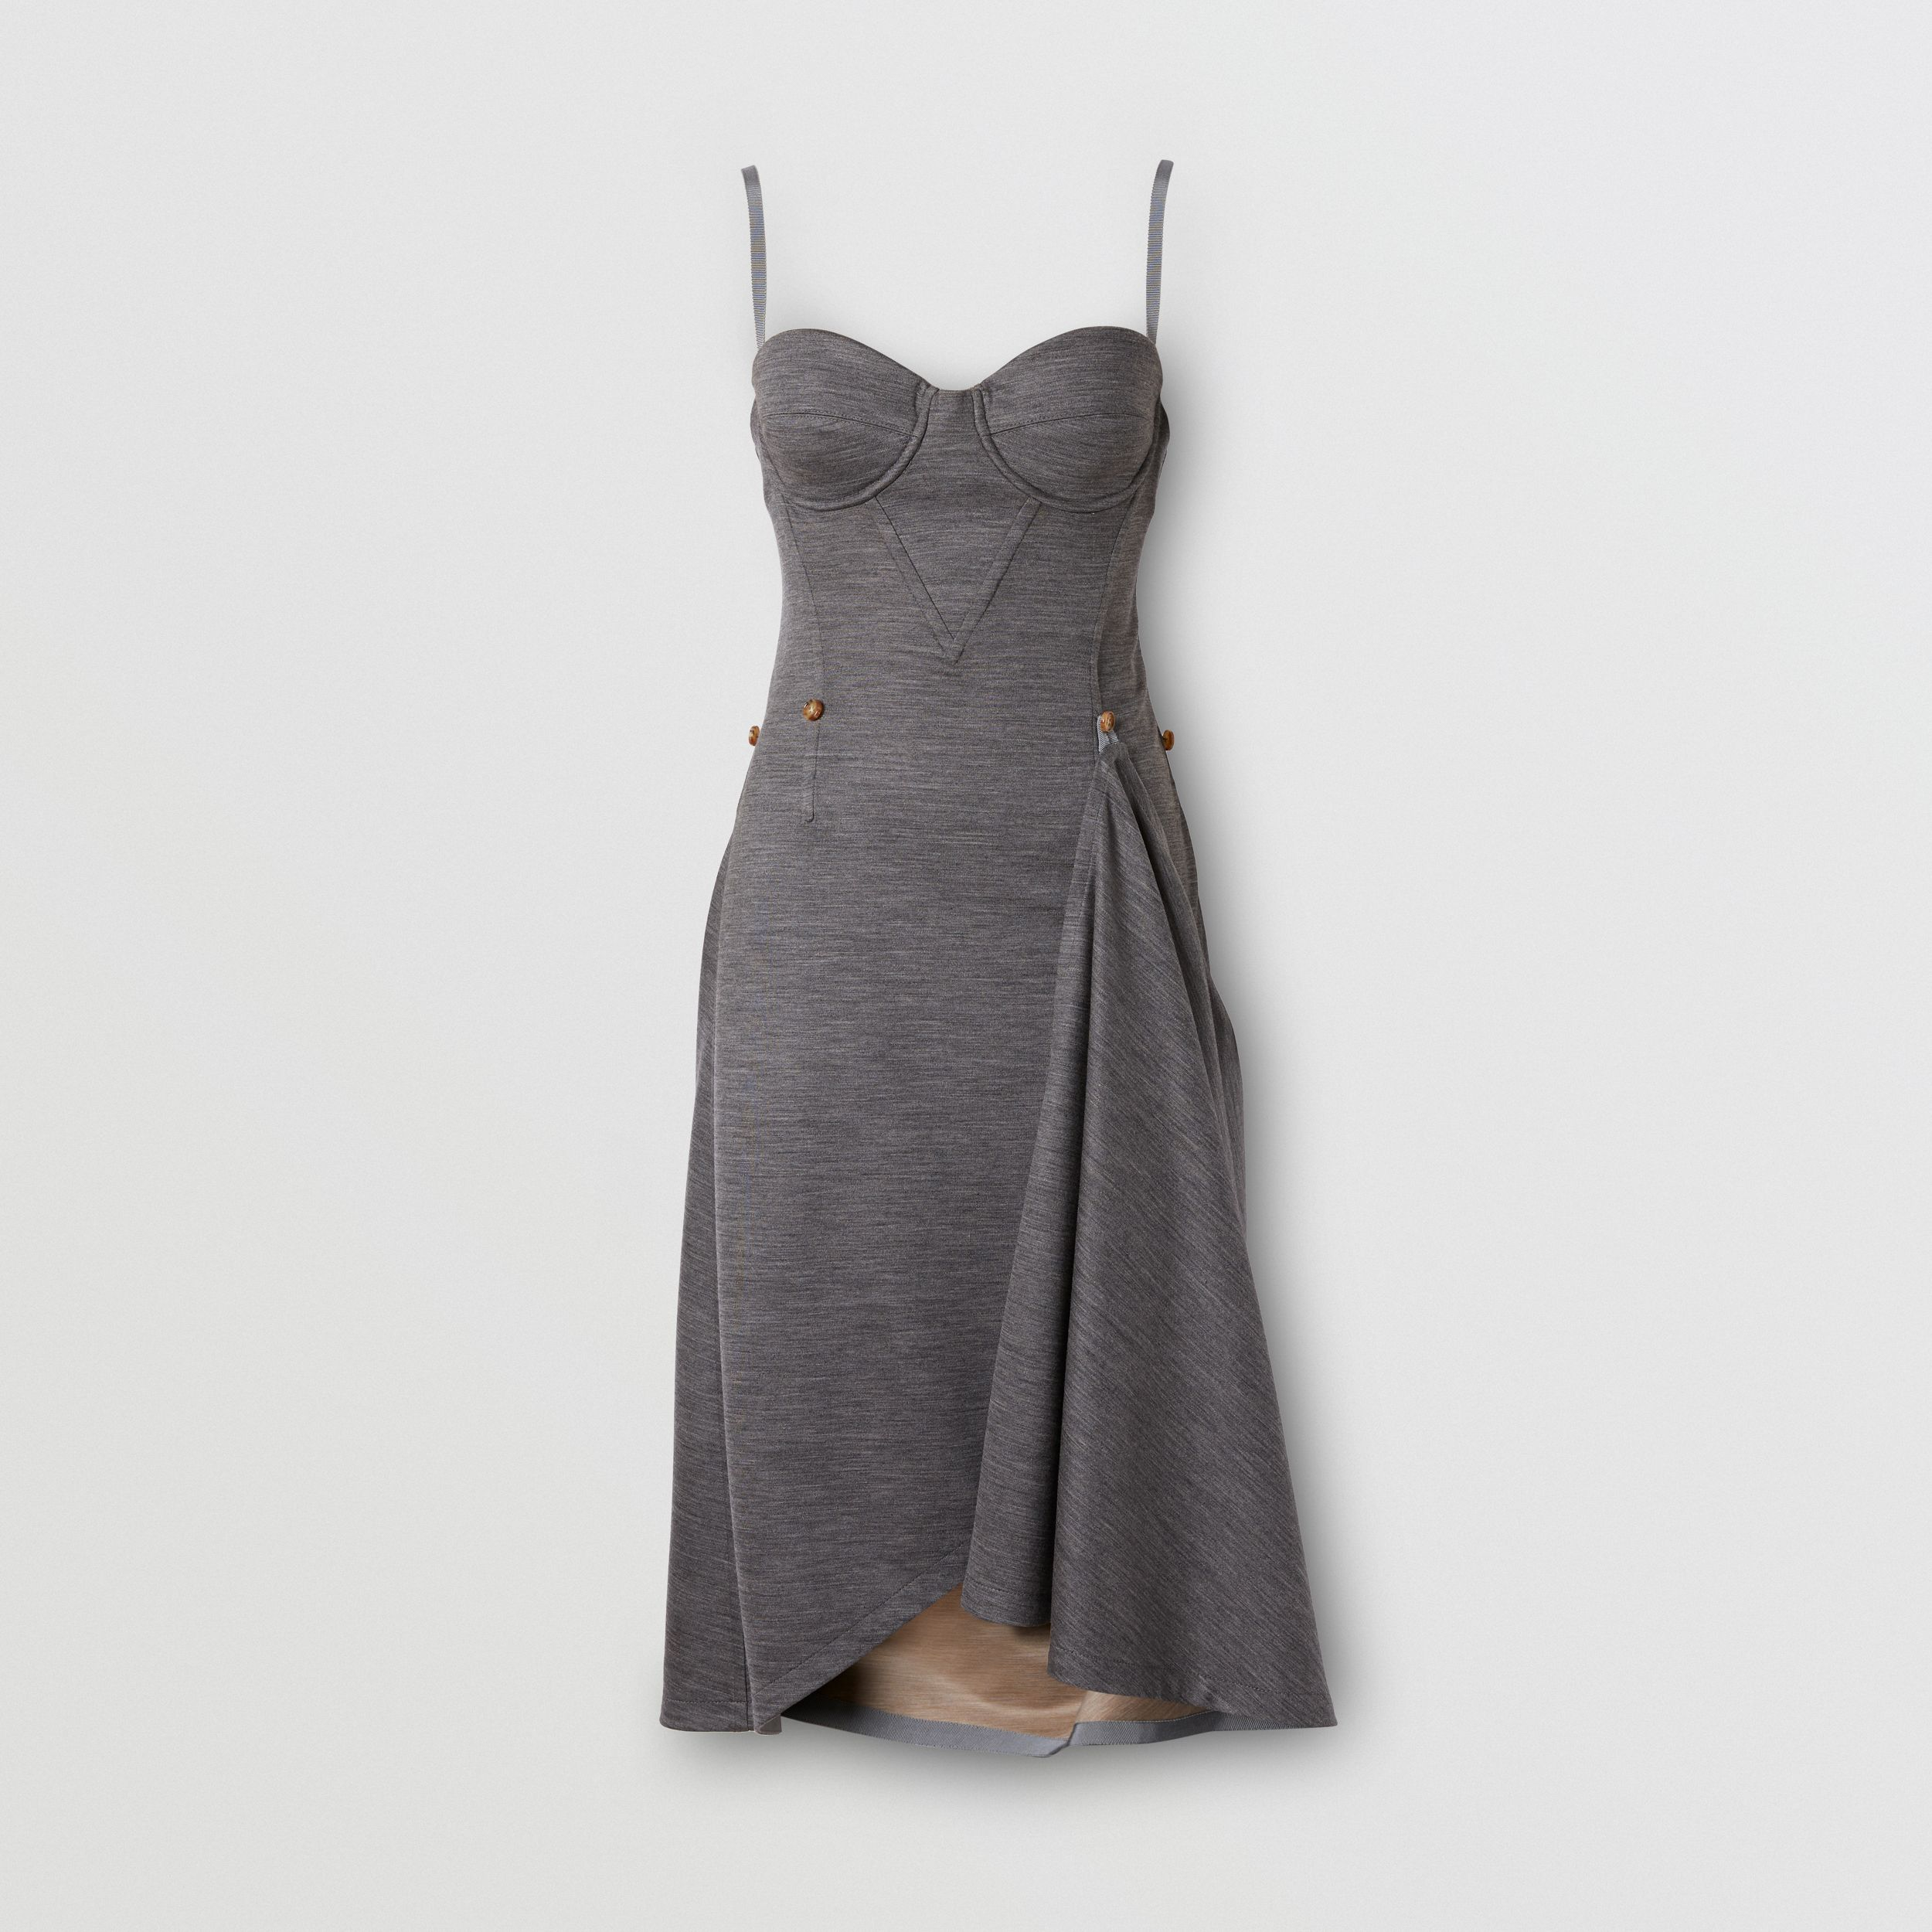 Asymmetric Technical Wool Corset Dress in Charcoal Grey - Women | Burberry - 4